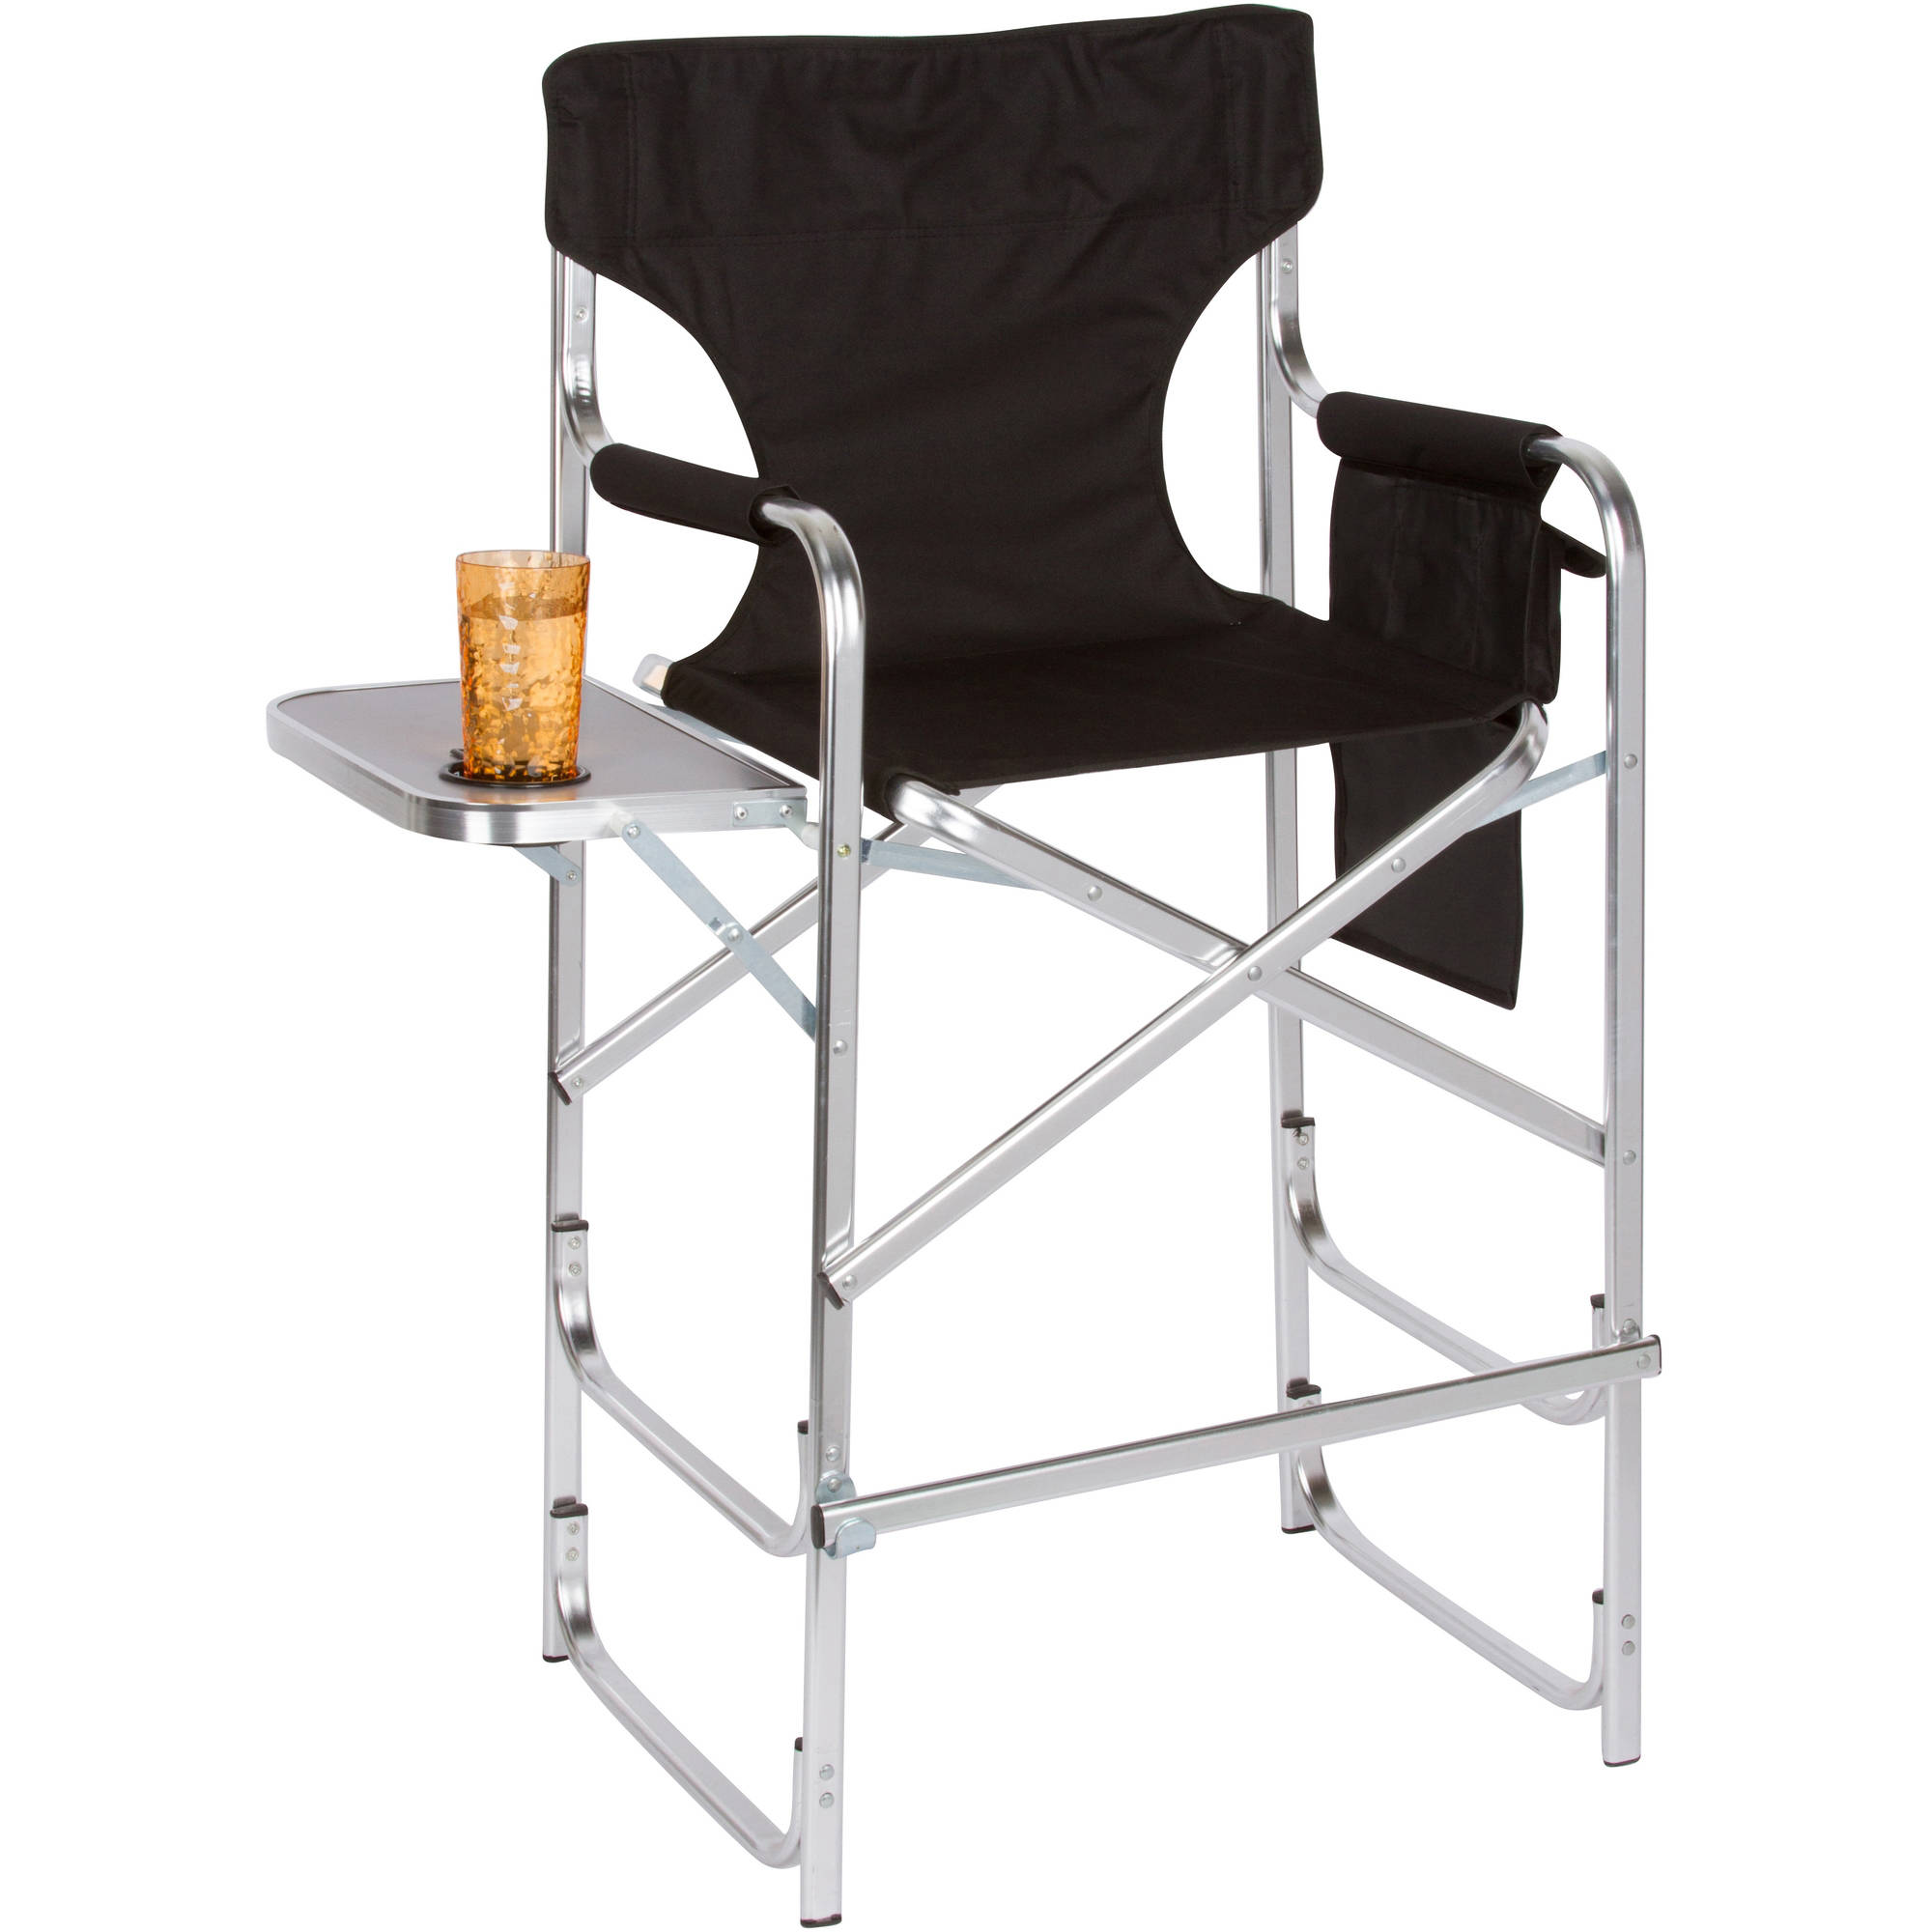 Aluminum Frame Tall Director's Chair With Side Table by Trademark Innovations, Black